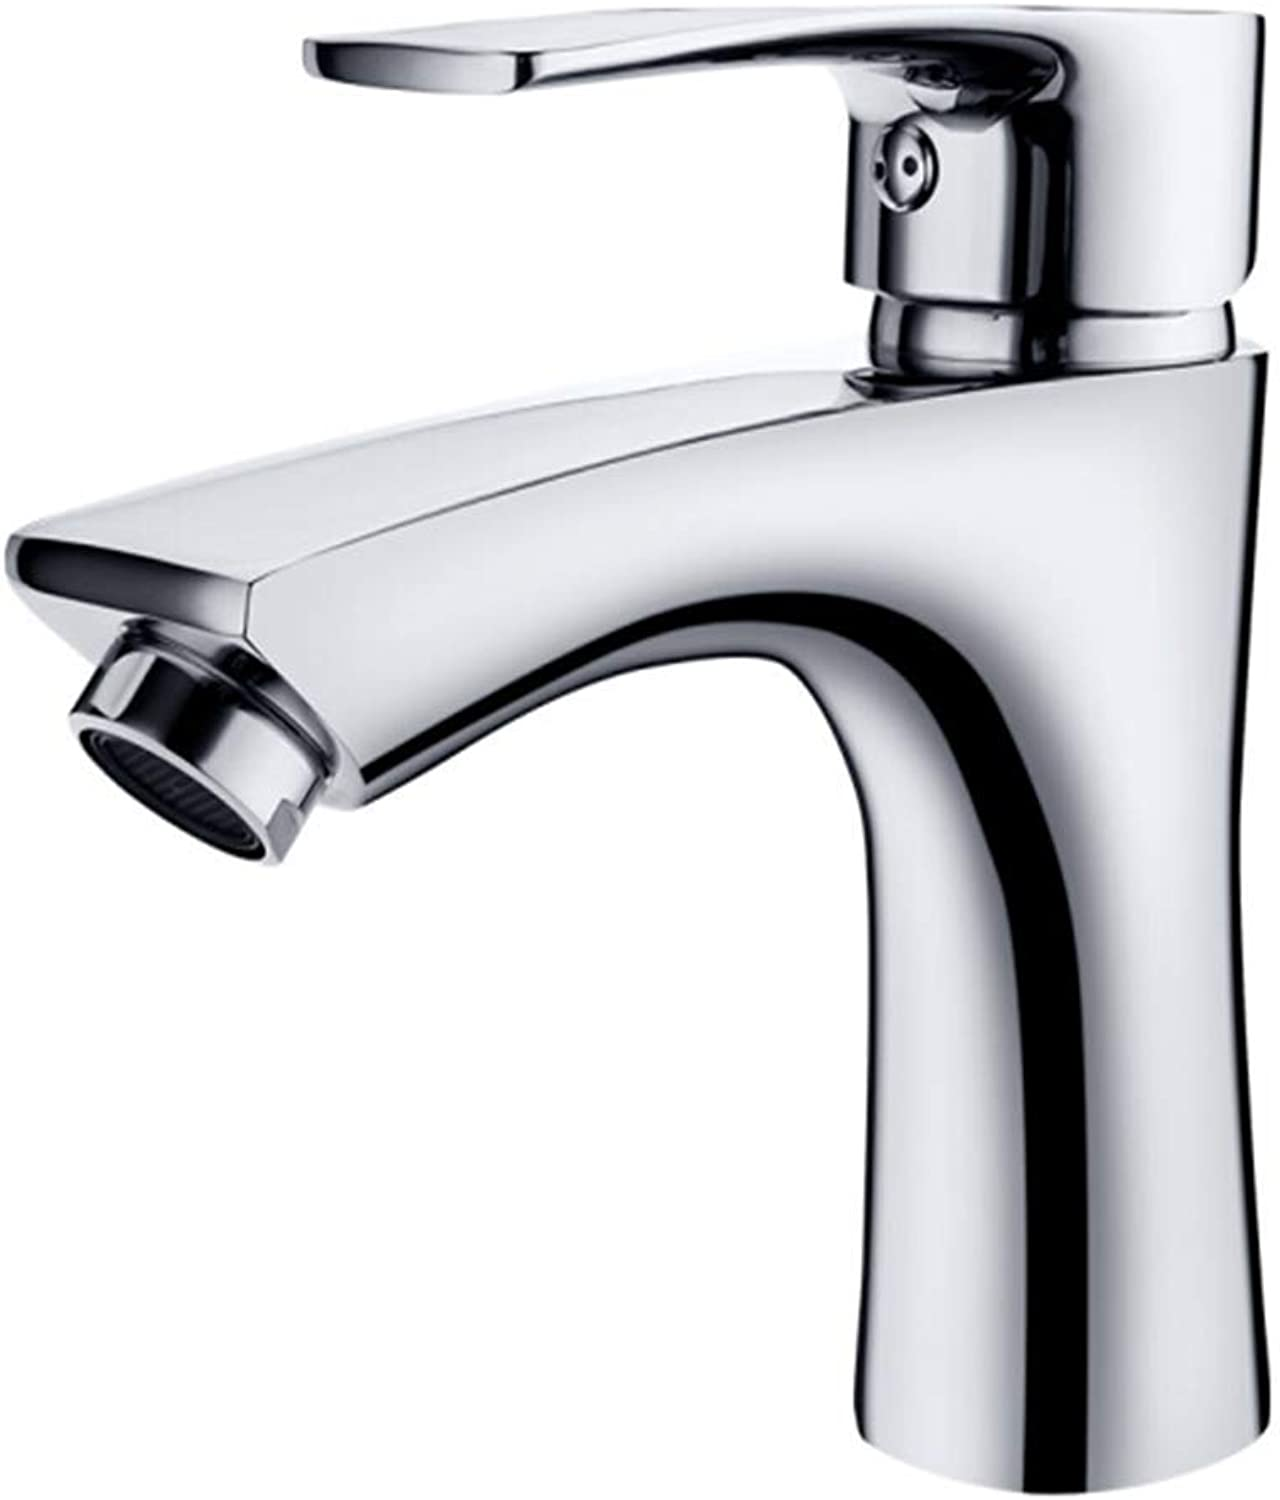 Kitchen Taps Faucet Modern Kitchen Sink Taps Stainless Steelcopper Cold and Hot Water Faucet Washbasin Faucet Faucet Faucet Faucet